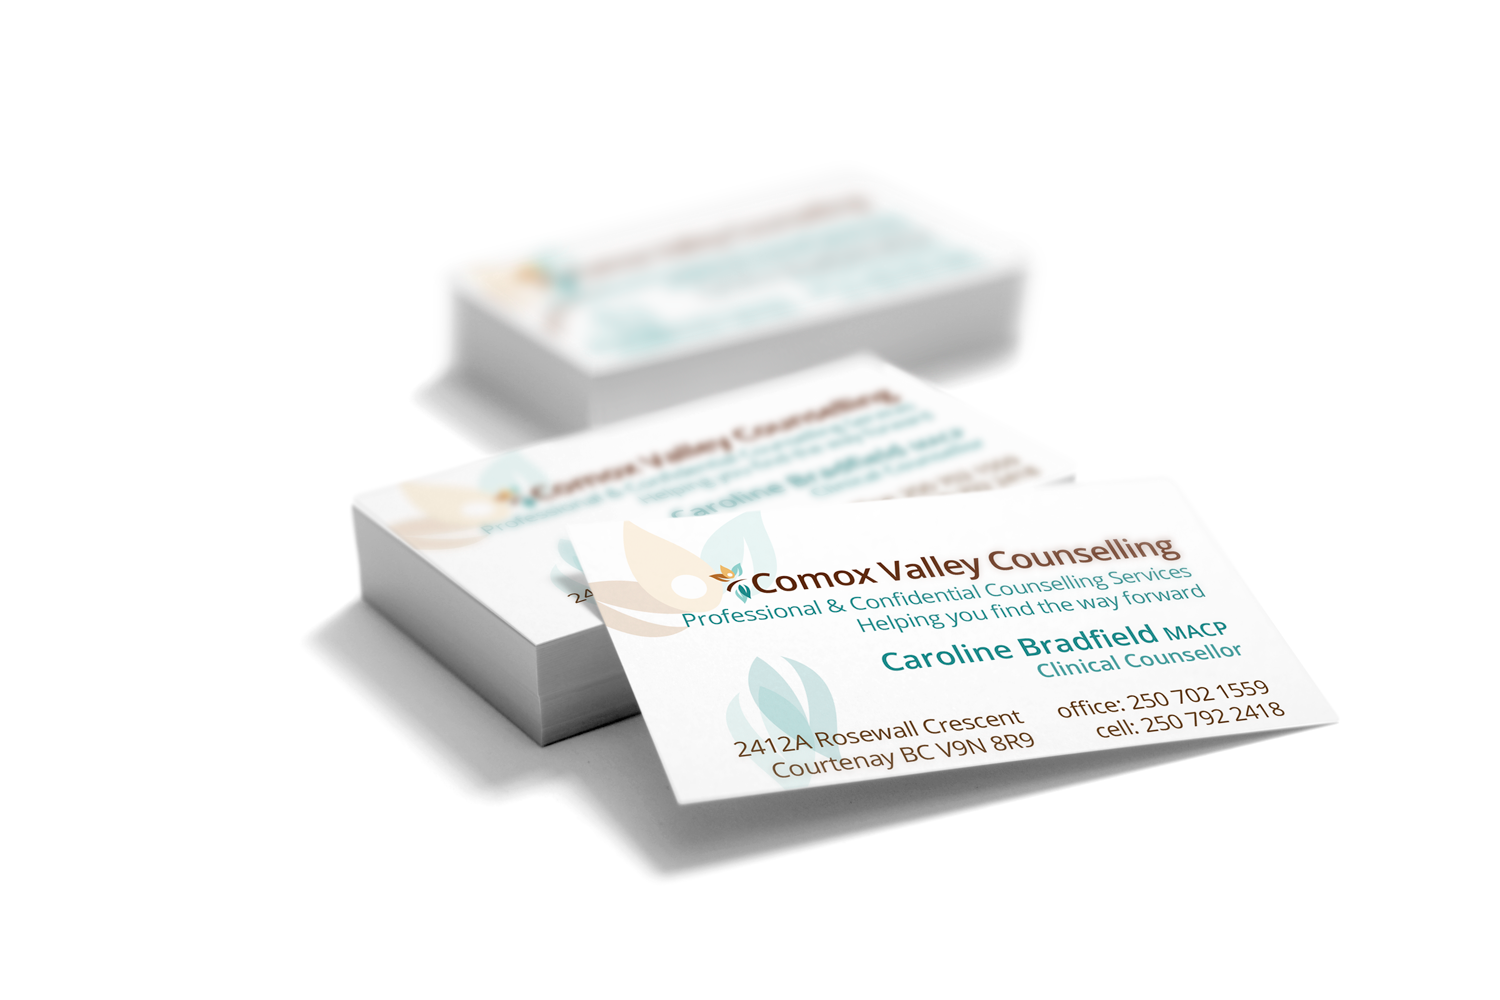 business cards for Comox Valley Counselling, designed by Maggie Ziegler